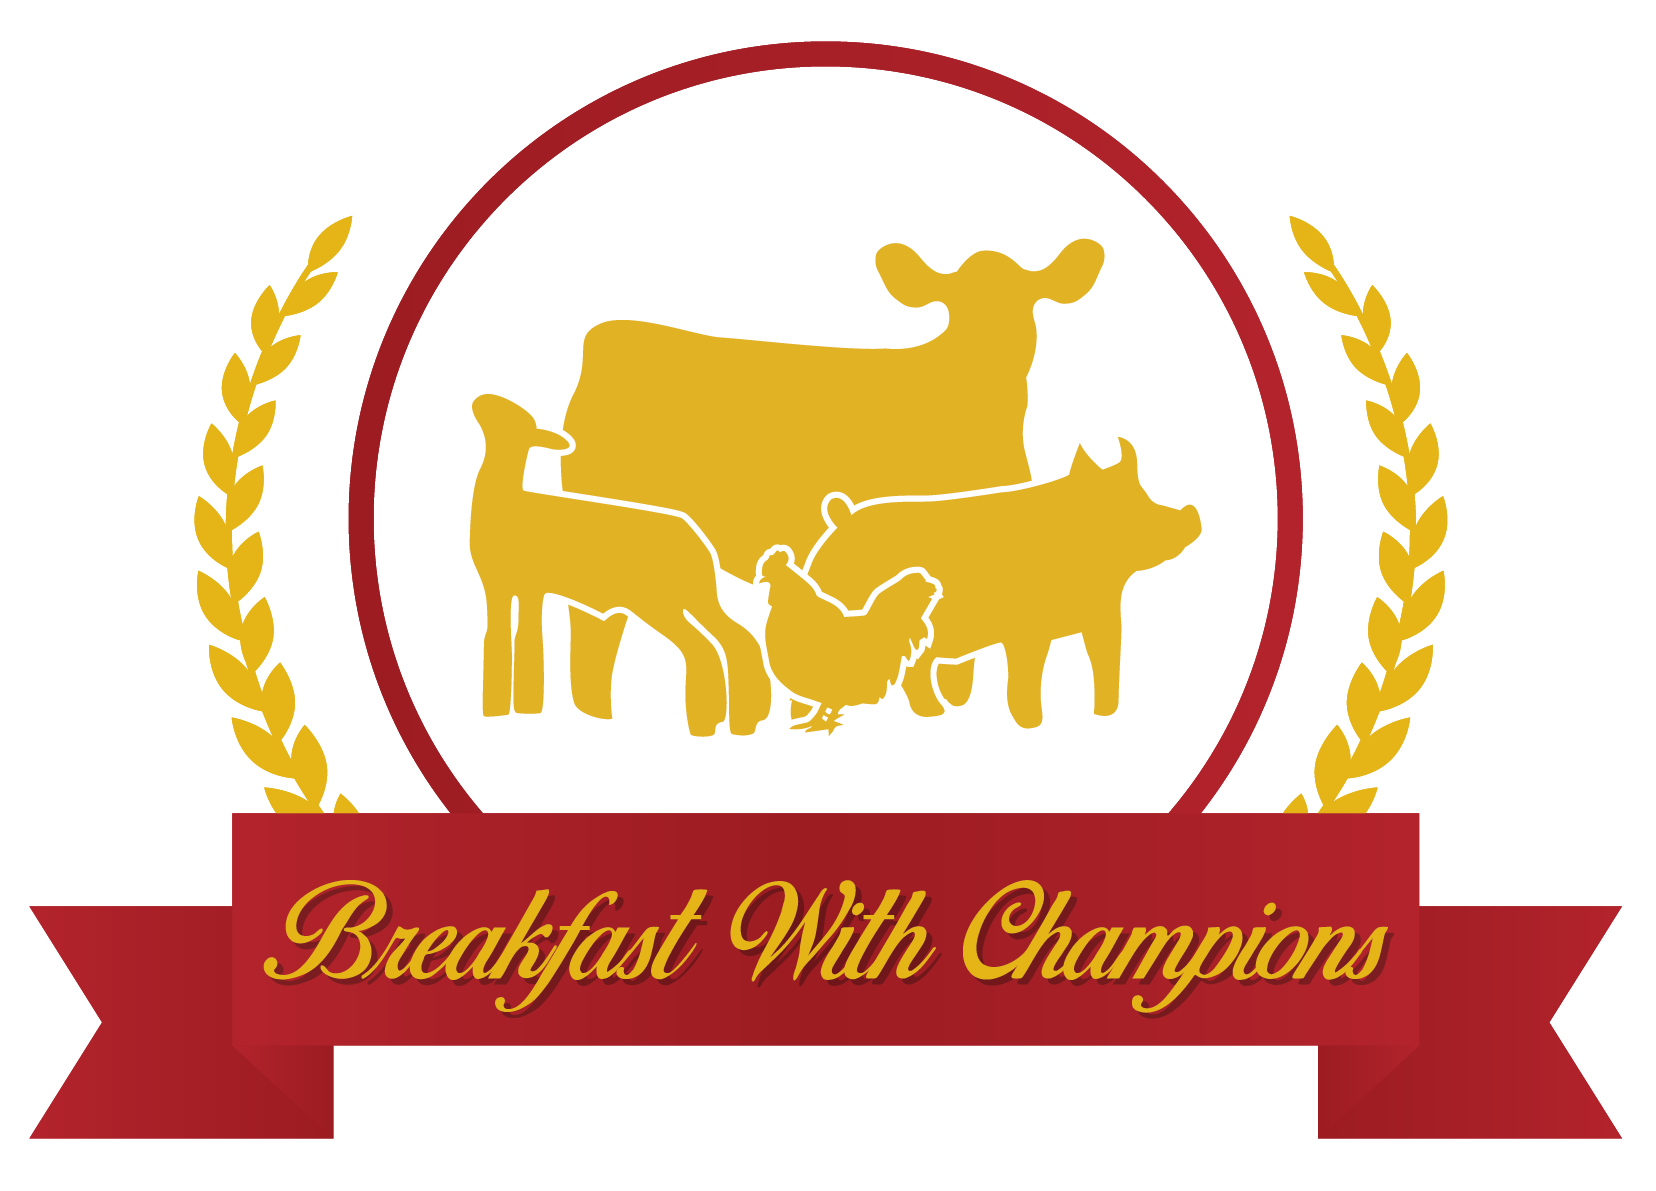 Breakfast With Champions Logo